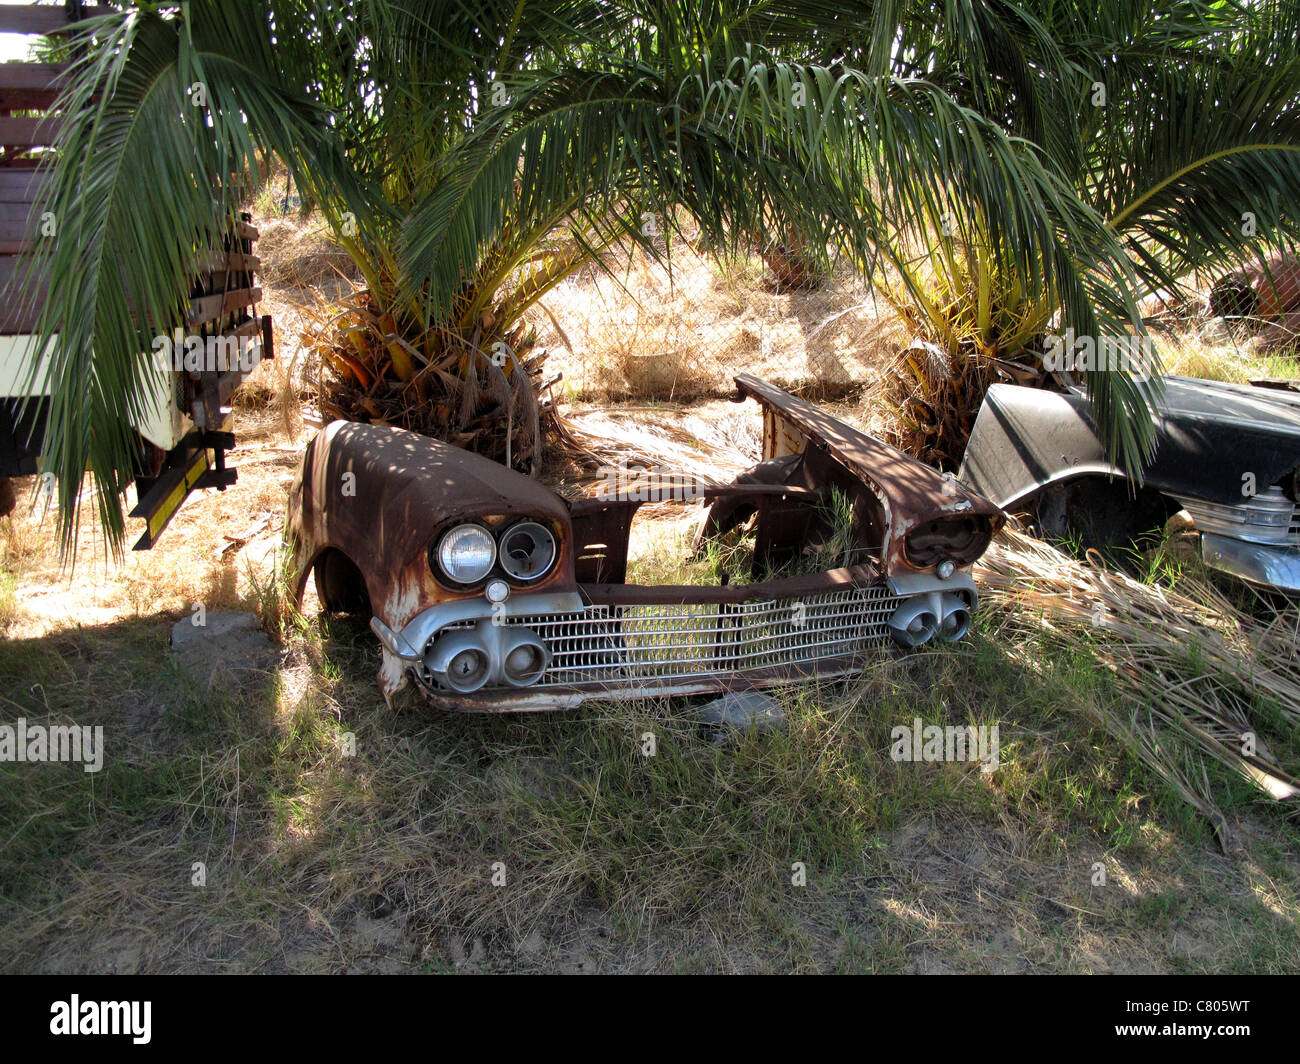 Car junk yard with bonnet of car by palm tree - Stock Image